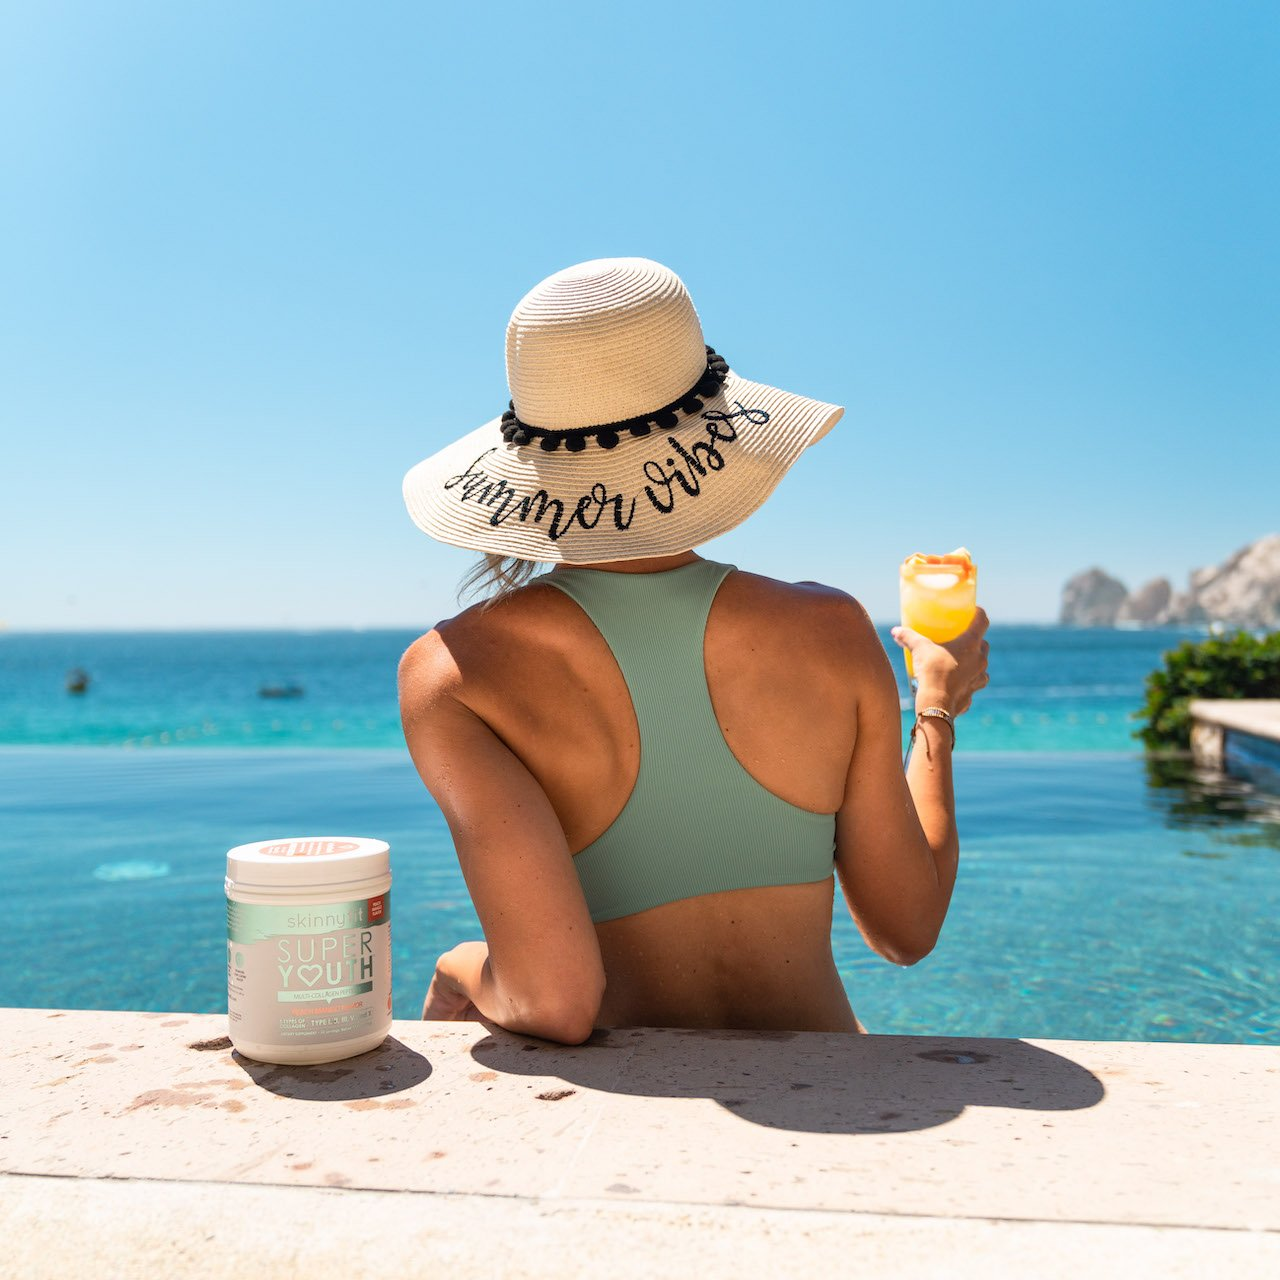 Woman in an infinity pool drinking SkinnyFit Super Youth collagen peptides to help cracking joints